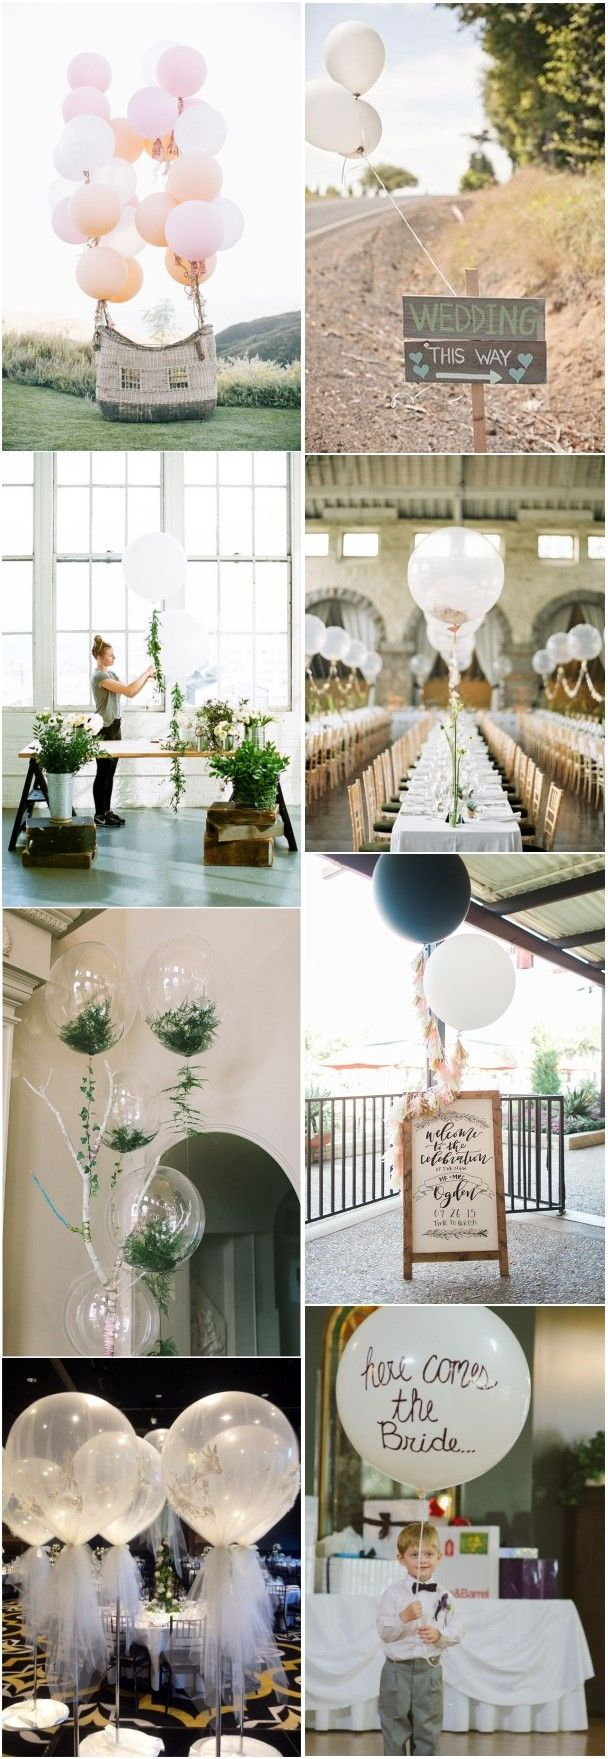 24 Fun and Creative Balloon Wedding Decoration Ideas | Decoration ...